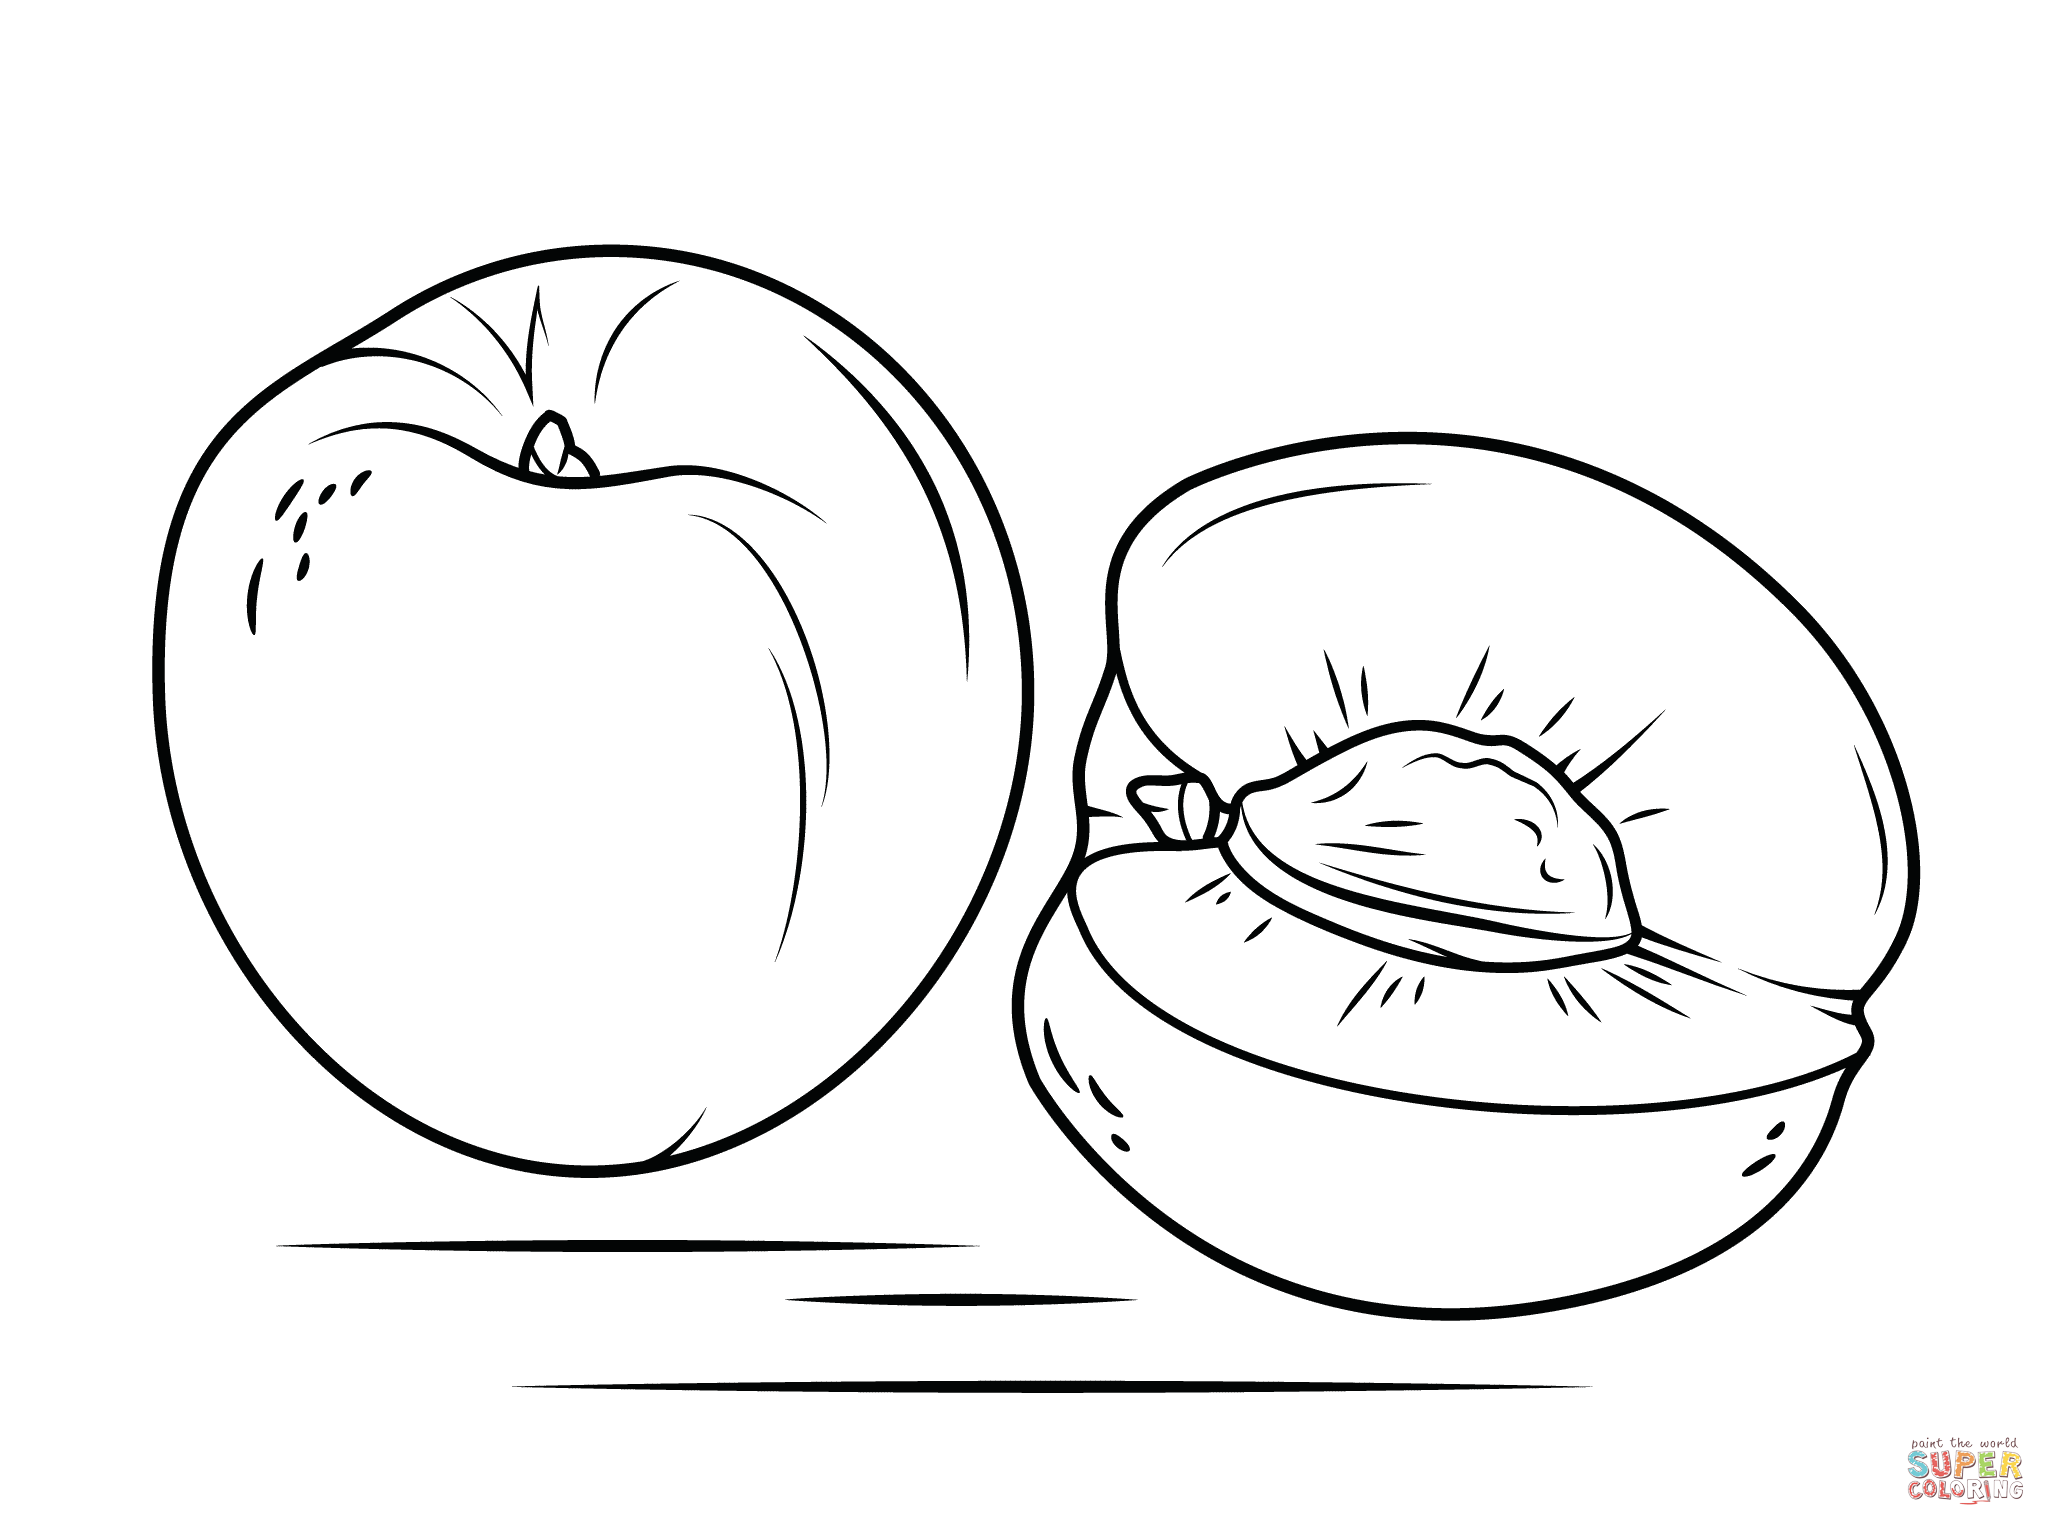 nectarine color whole and sliced nectarine coloring page free printable color nectarine